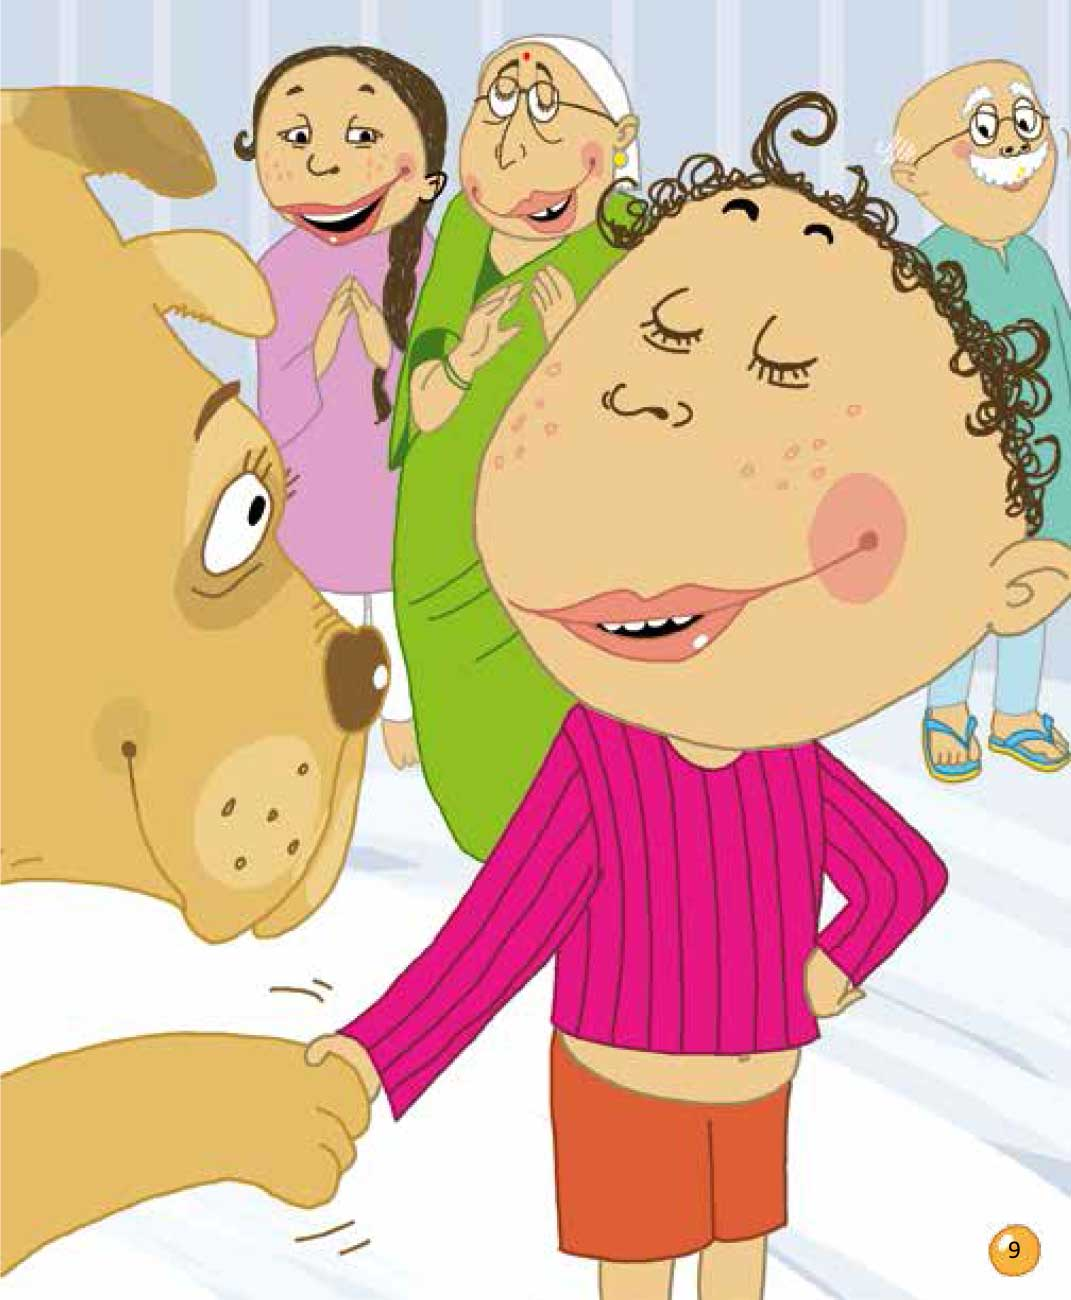 Bedtime stories 'Veeru Goes to the Circus' free picture book page 9